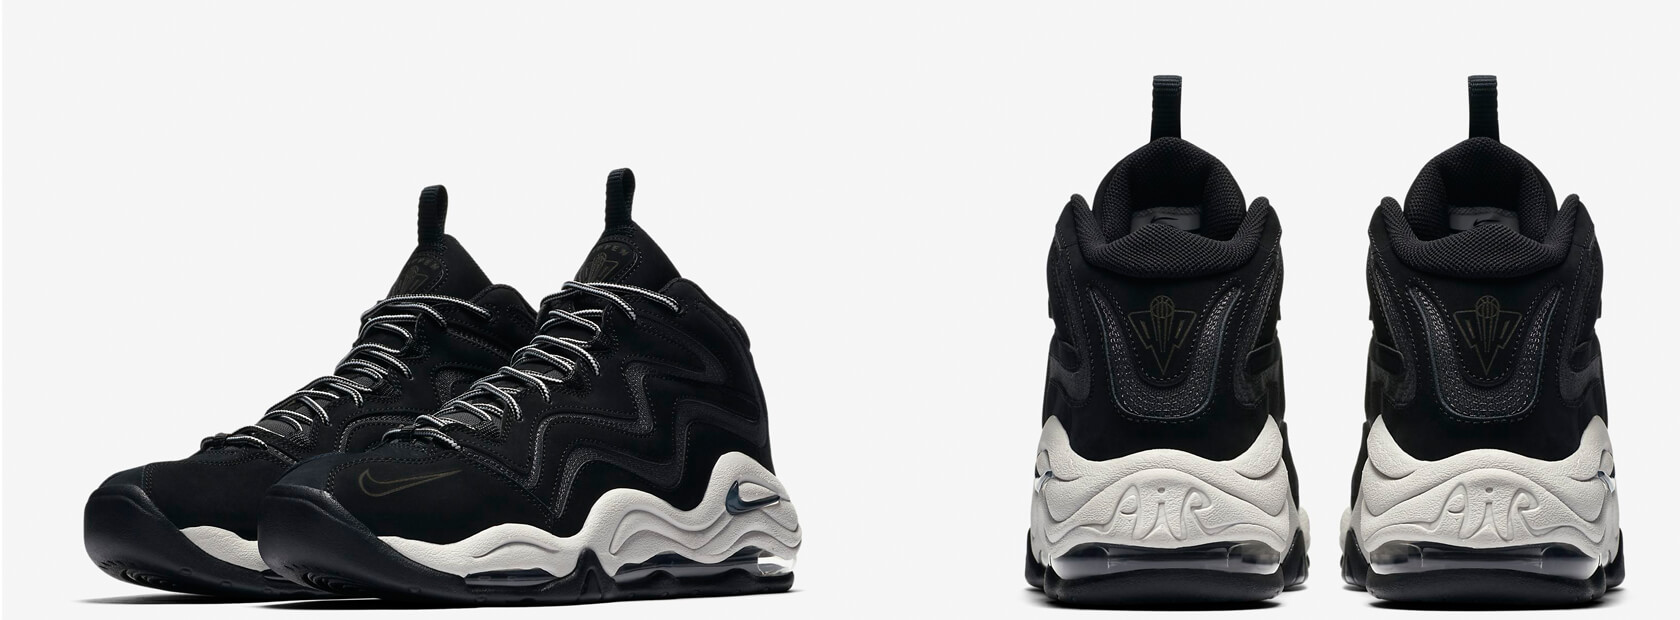 Nike Air Pippen - Black / Anthracite